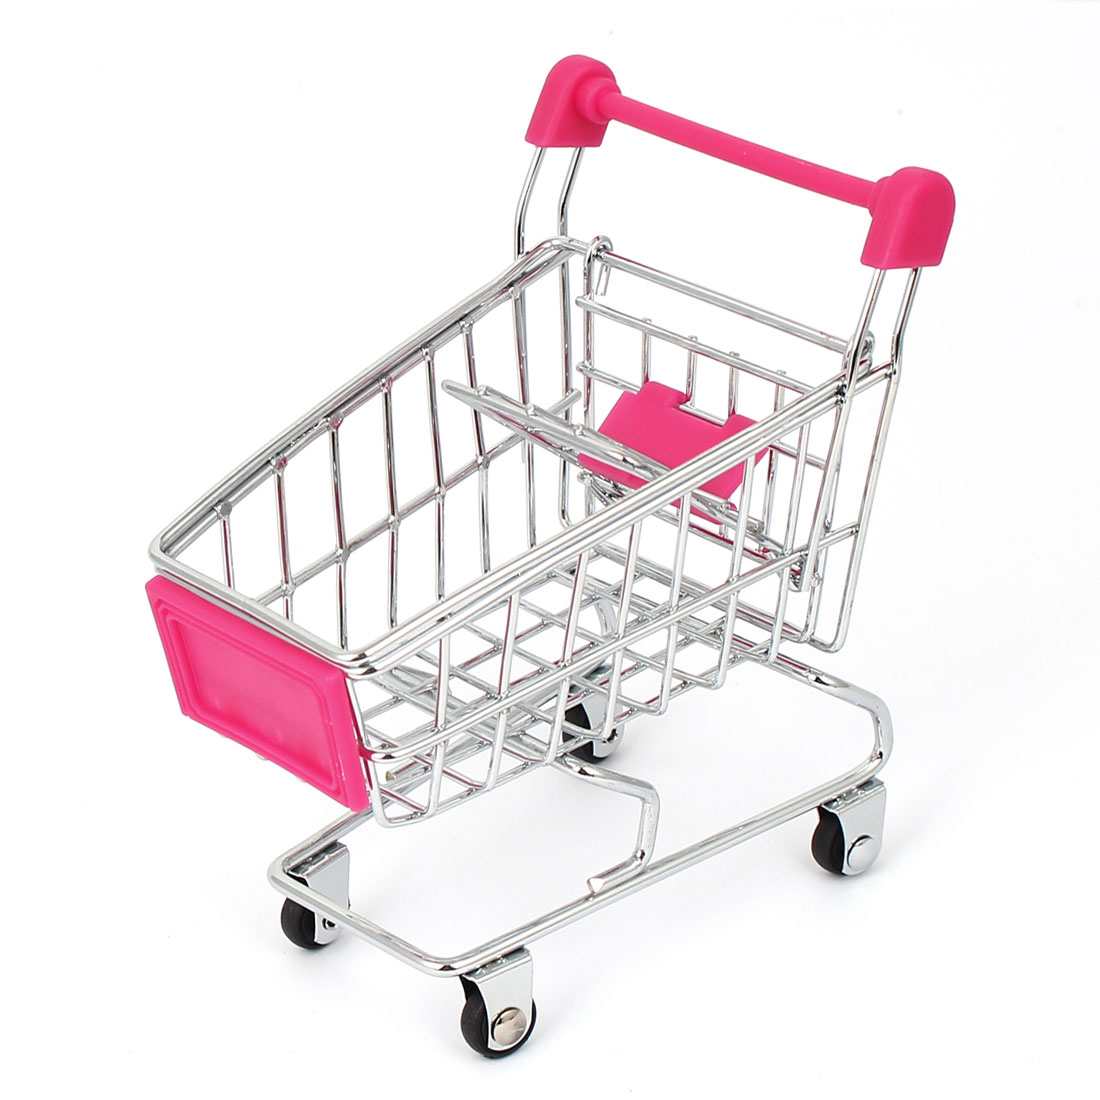 Child Supermarket Shopping Hand Trolly Cart Model Toy Storage Container Fuchsia